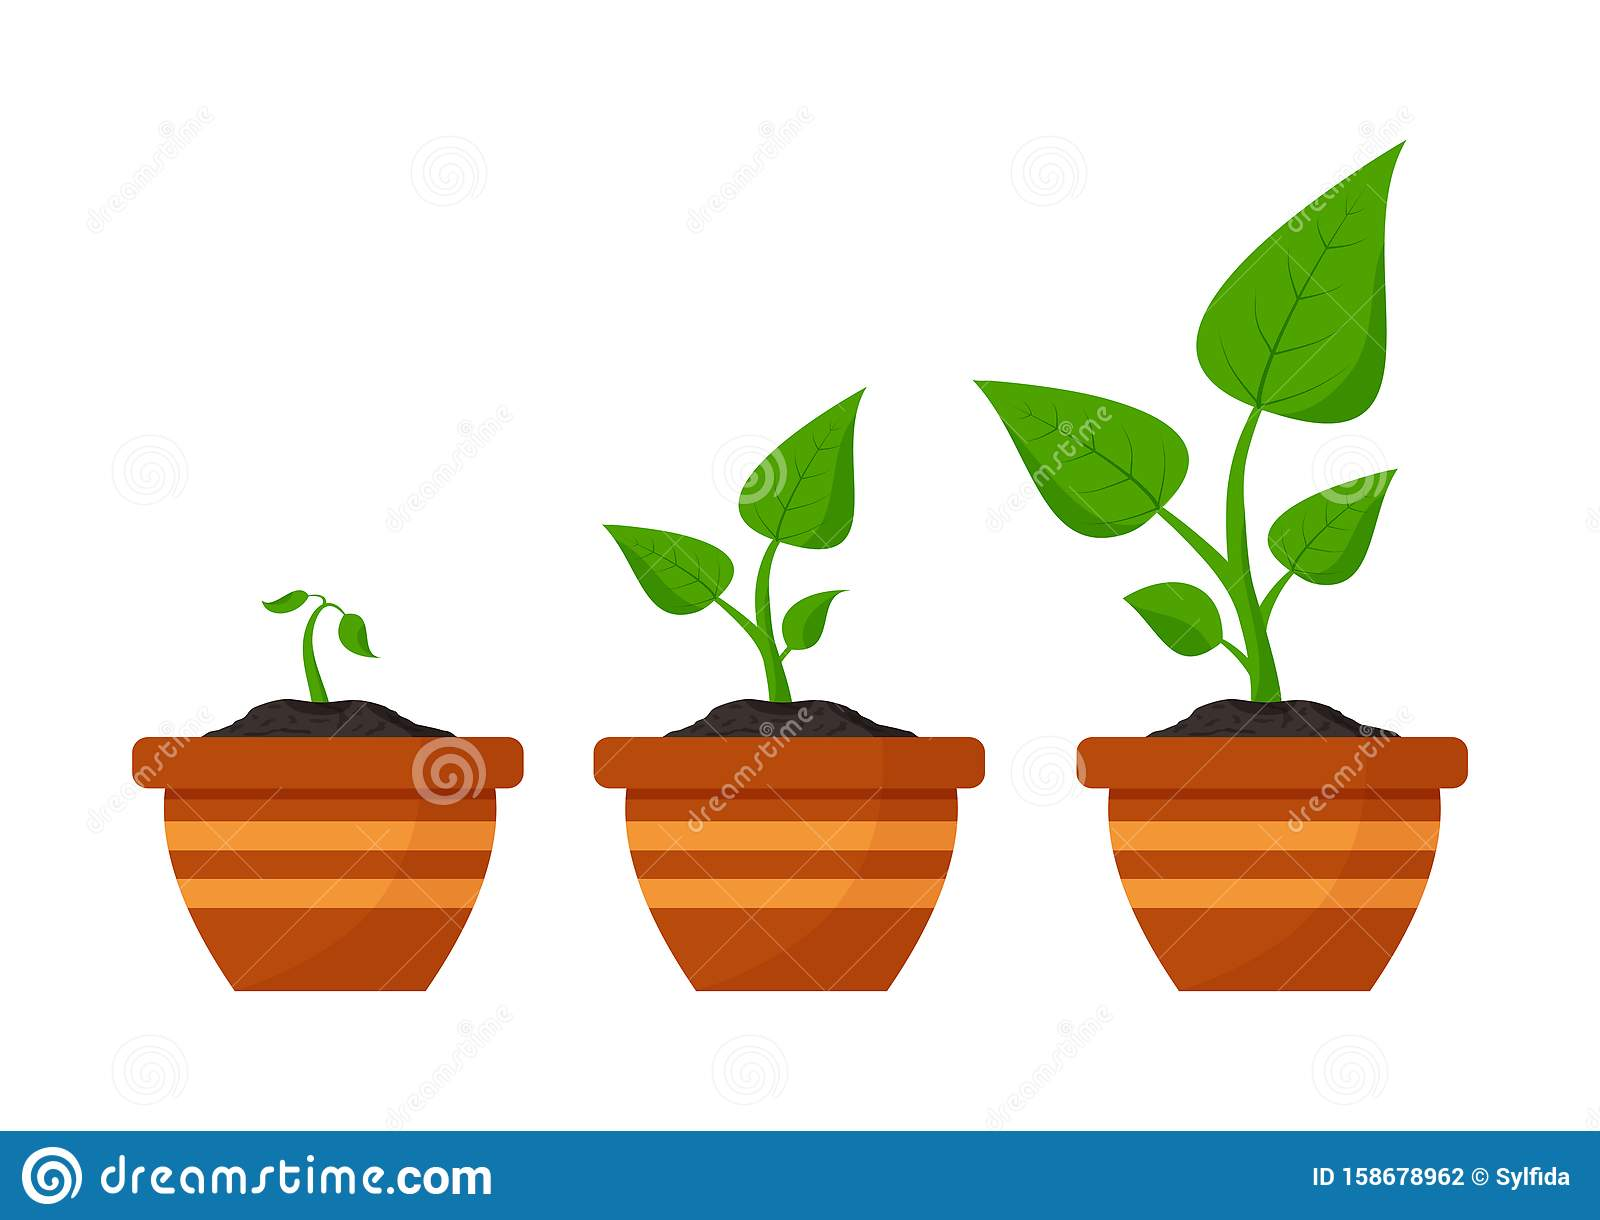 Gardening. Phases plant growing. Planting. Seeds sprout in flower pot. Infographic and evolution concept. Vector